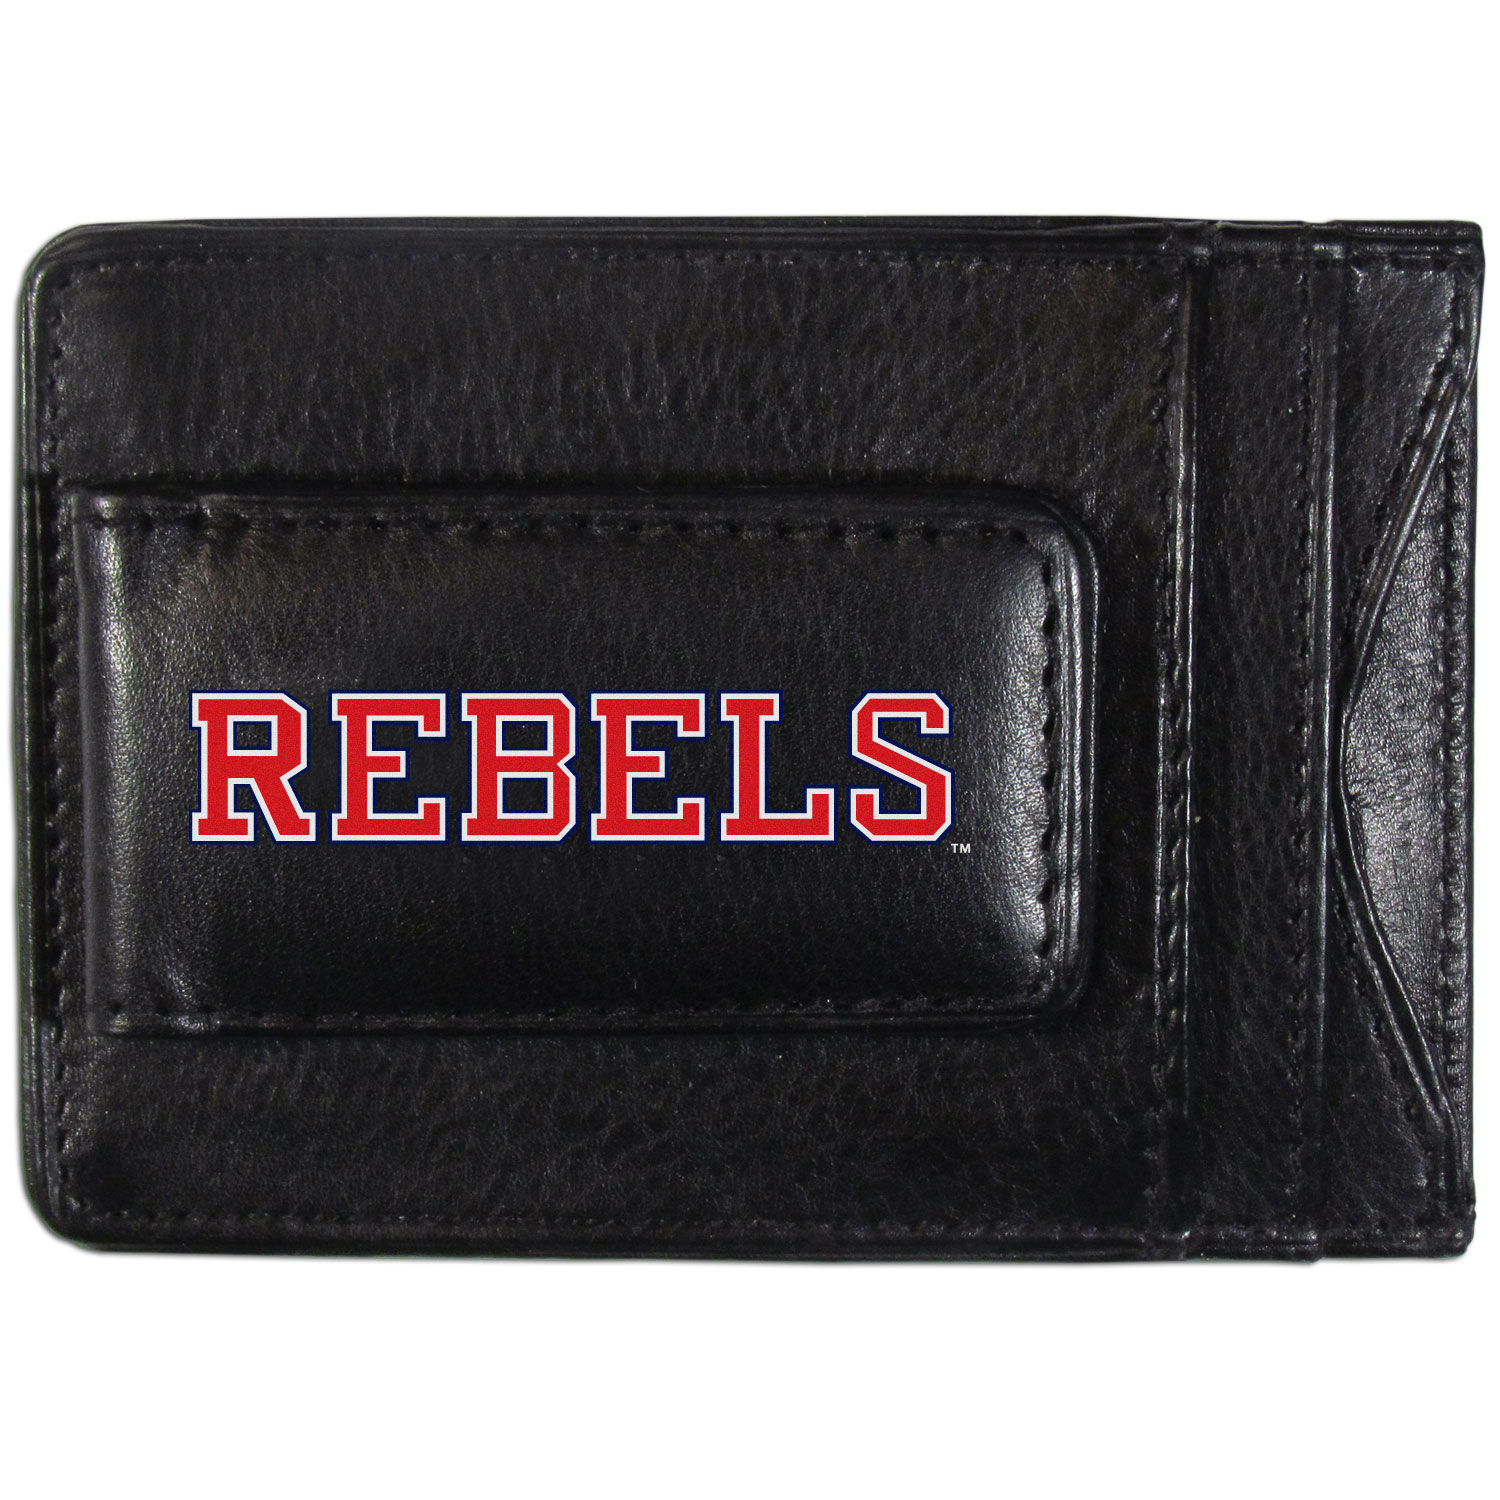 Mississippi Rebels Logo Leather Cash and Cardholder - This super slim leather wallet lets you have all the benefits of a money clip while keeping the organization of a wallet. On one side of this front pocket wallet there is a strong, magnetic money clip to keep your cash easily accessible and the?Mississippi Rebels team logo on the front. The versatile men's accessory is a perfect addition to your fan apparel.